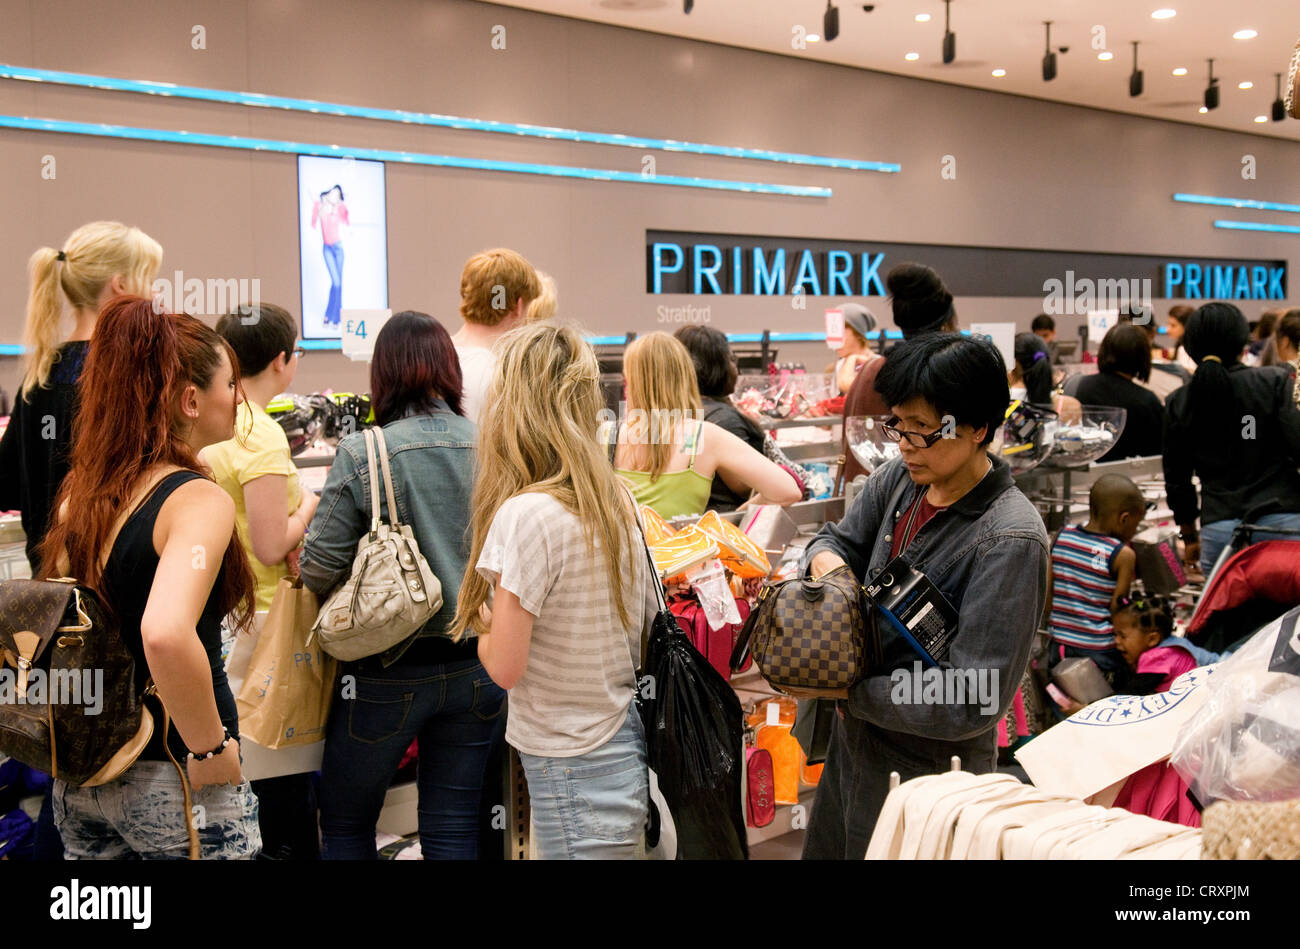 Shoppers in the Primark store, Westfield Shopping Centre Stratford London UK - Stock Image